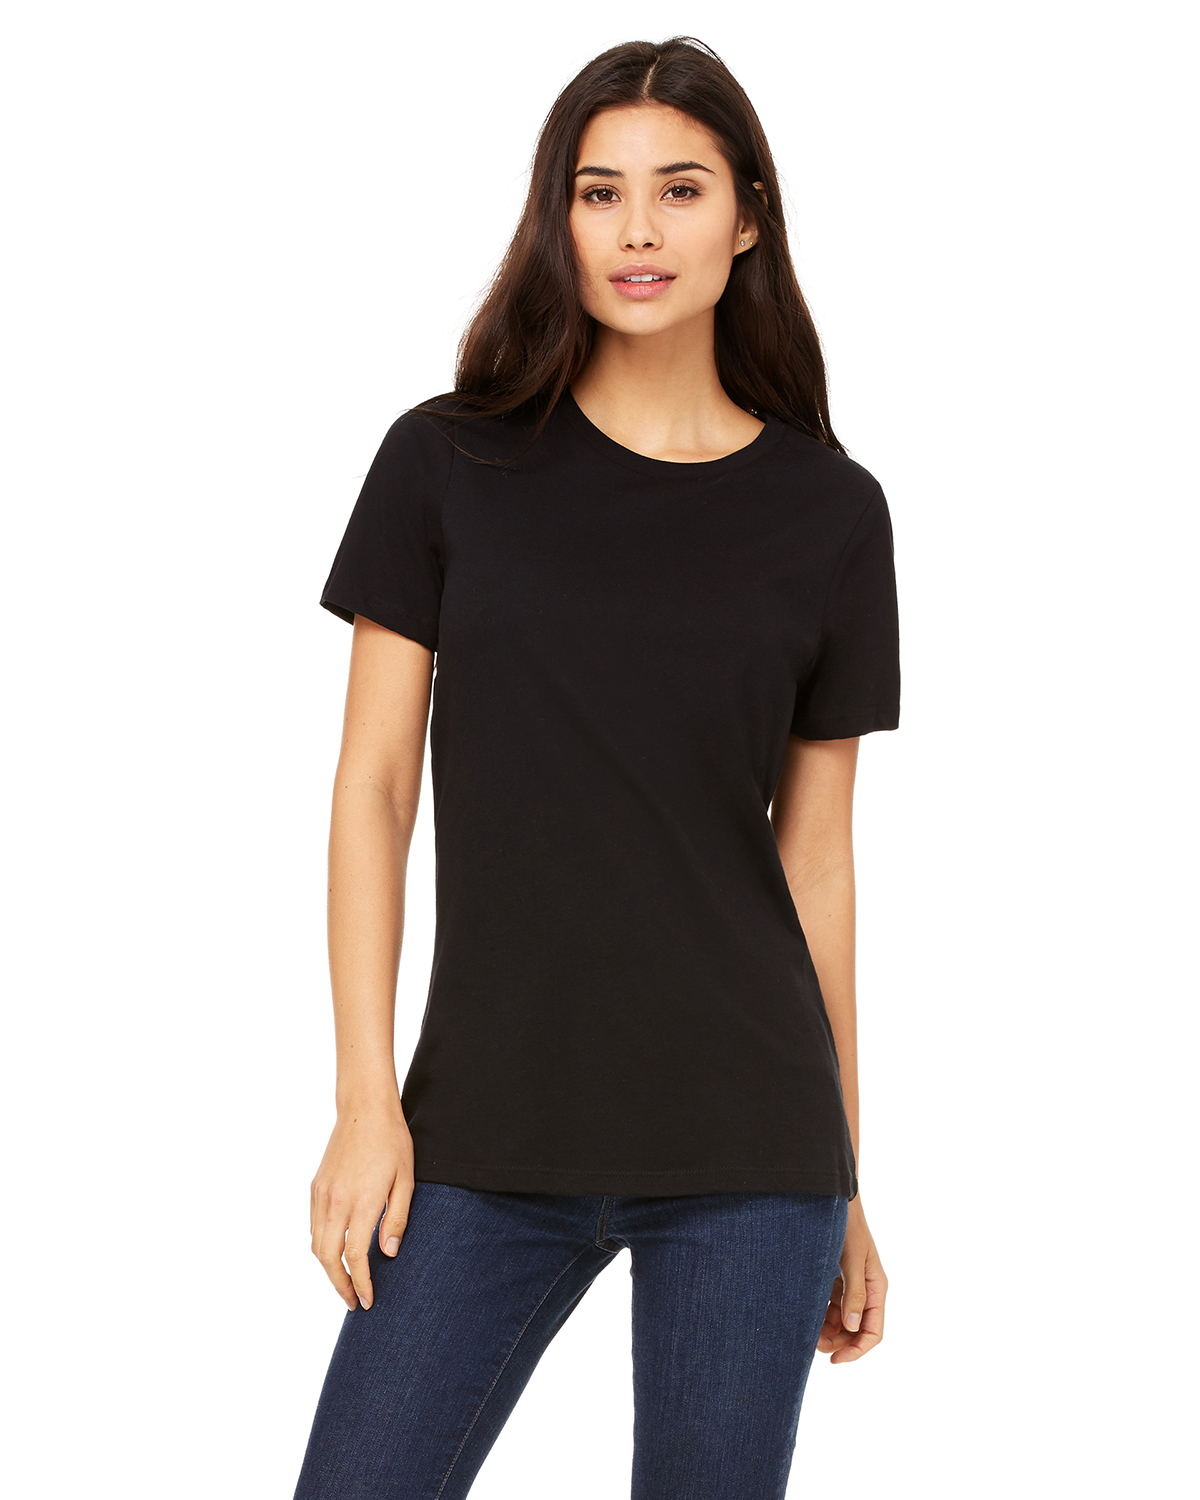 Canvas B6400 - Missy Short-Sleeve Jersey Crew Neck